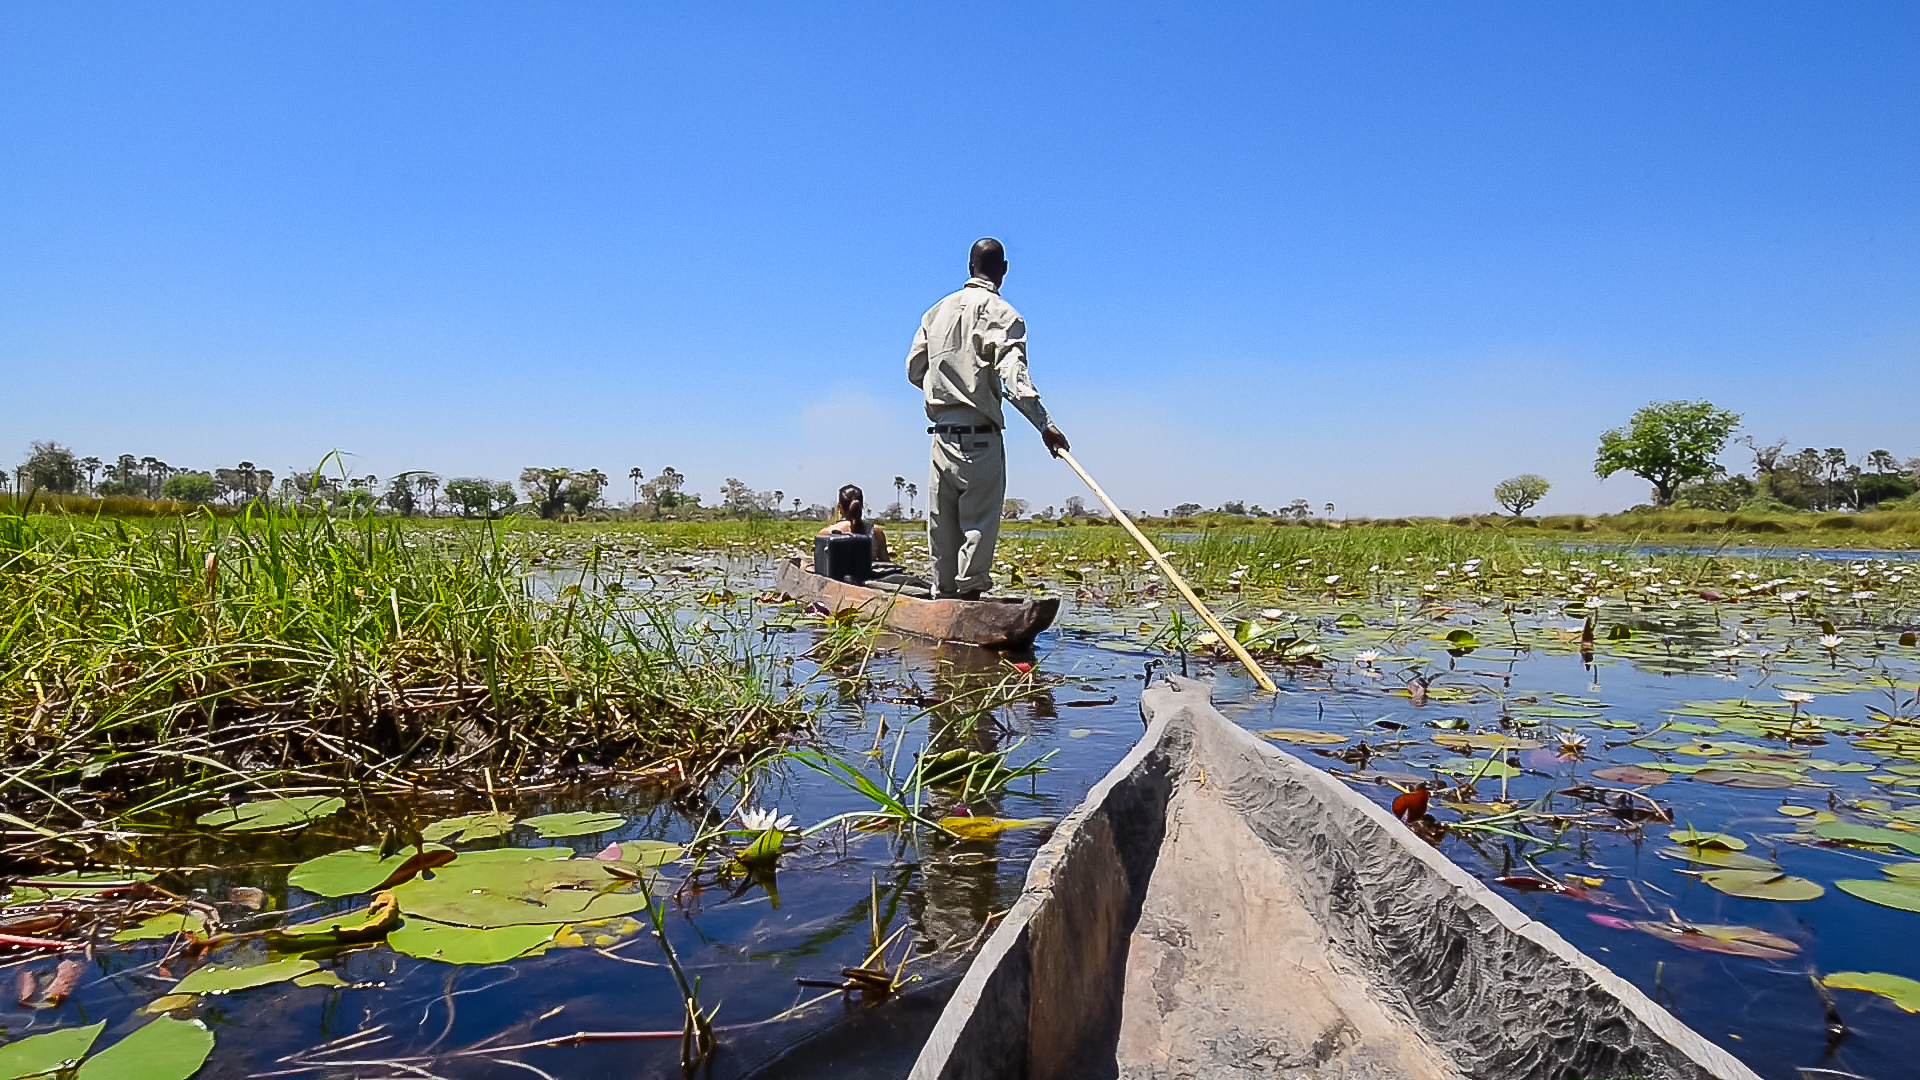 okavango_delta_activities_32.jpg